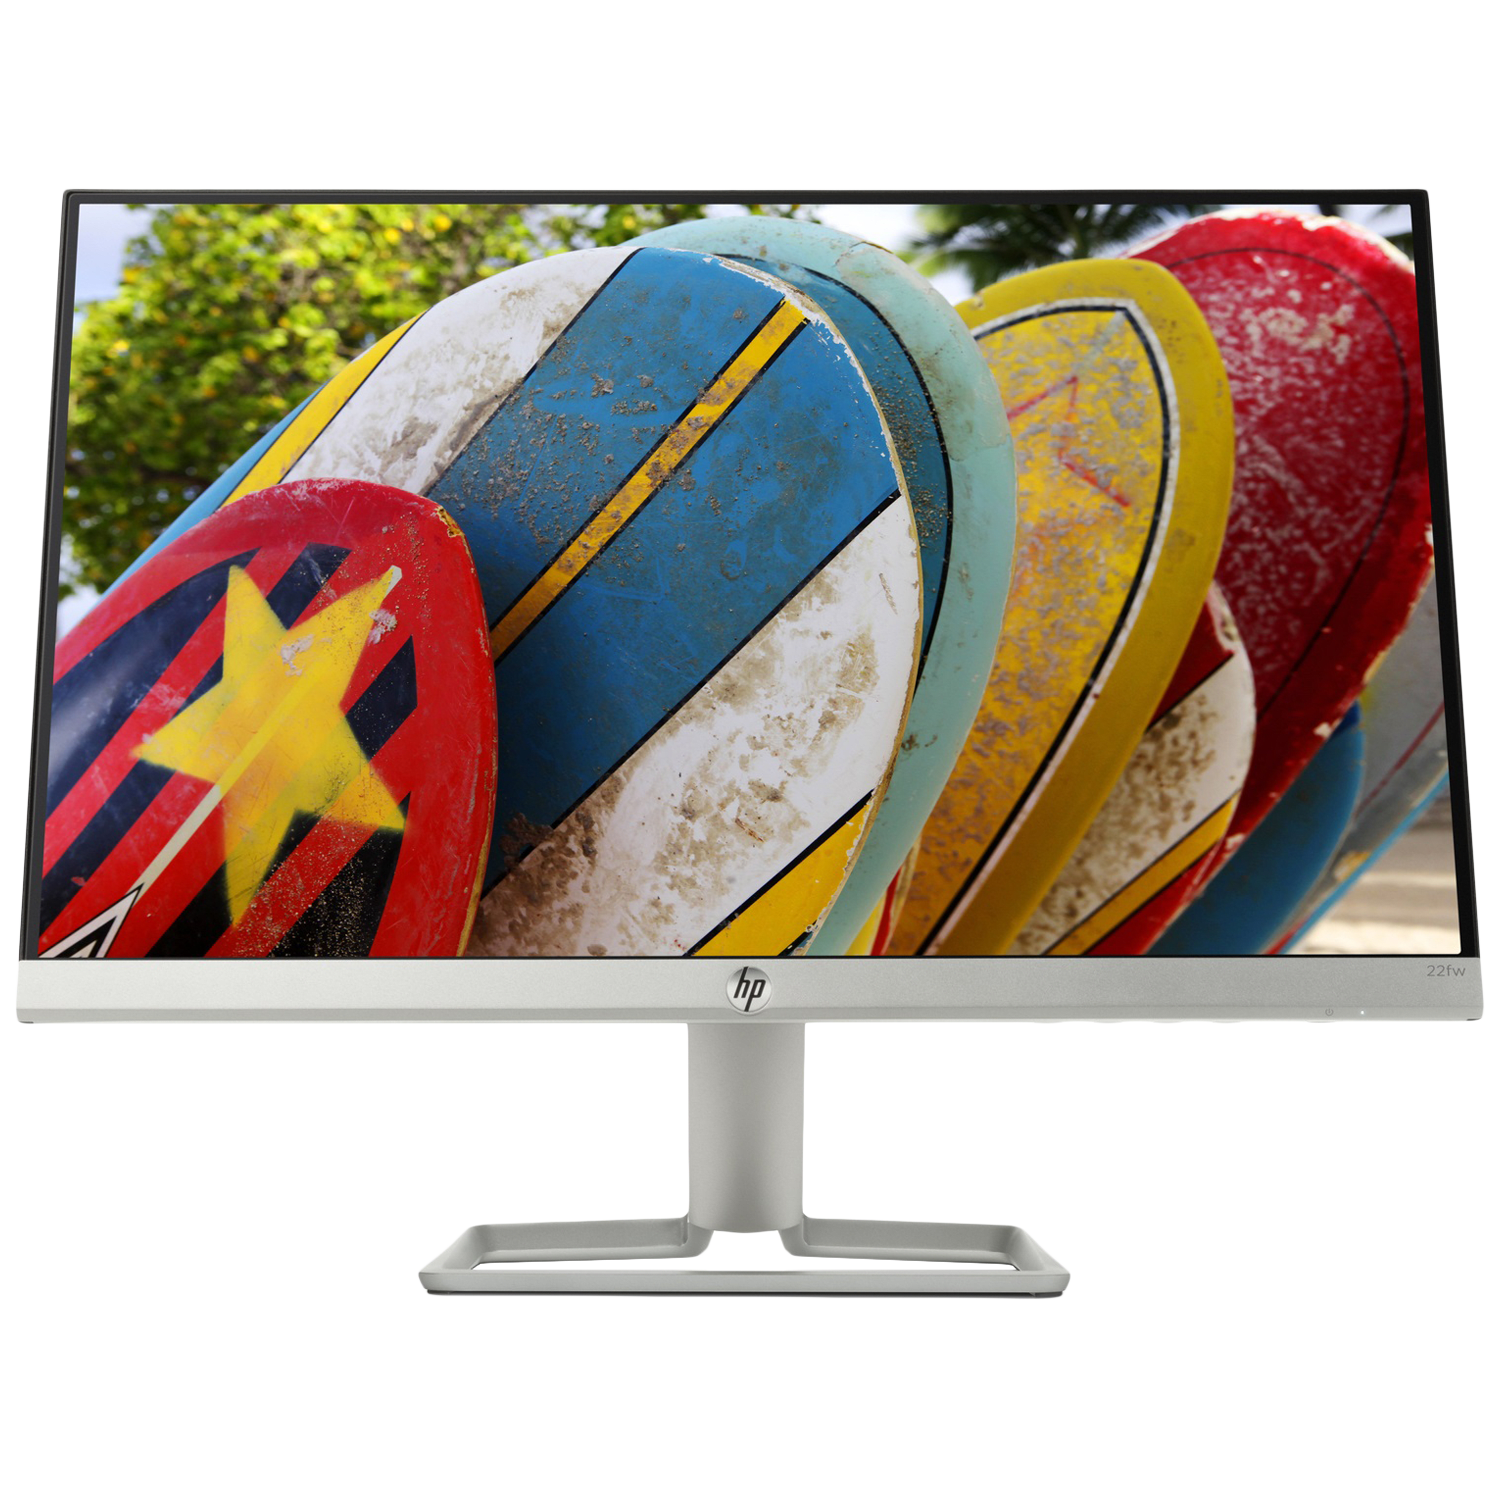 HP 22fw 54.6cm (21.5 Inches) Full HD IPS Screen Monitor (AMD Radeon FreeSync Technology, 3KS61AA, White/Silver)